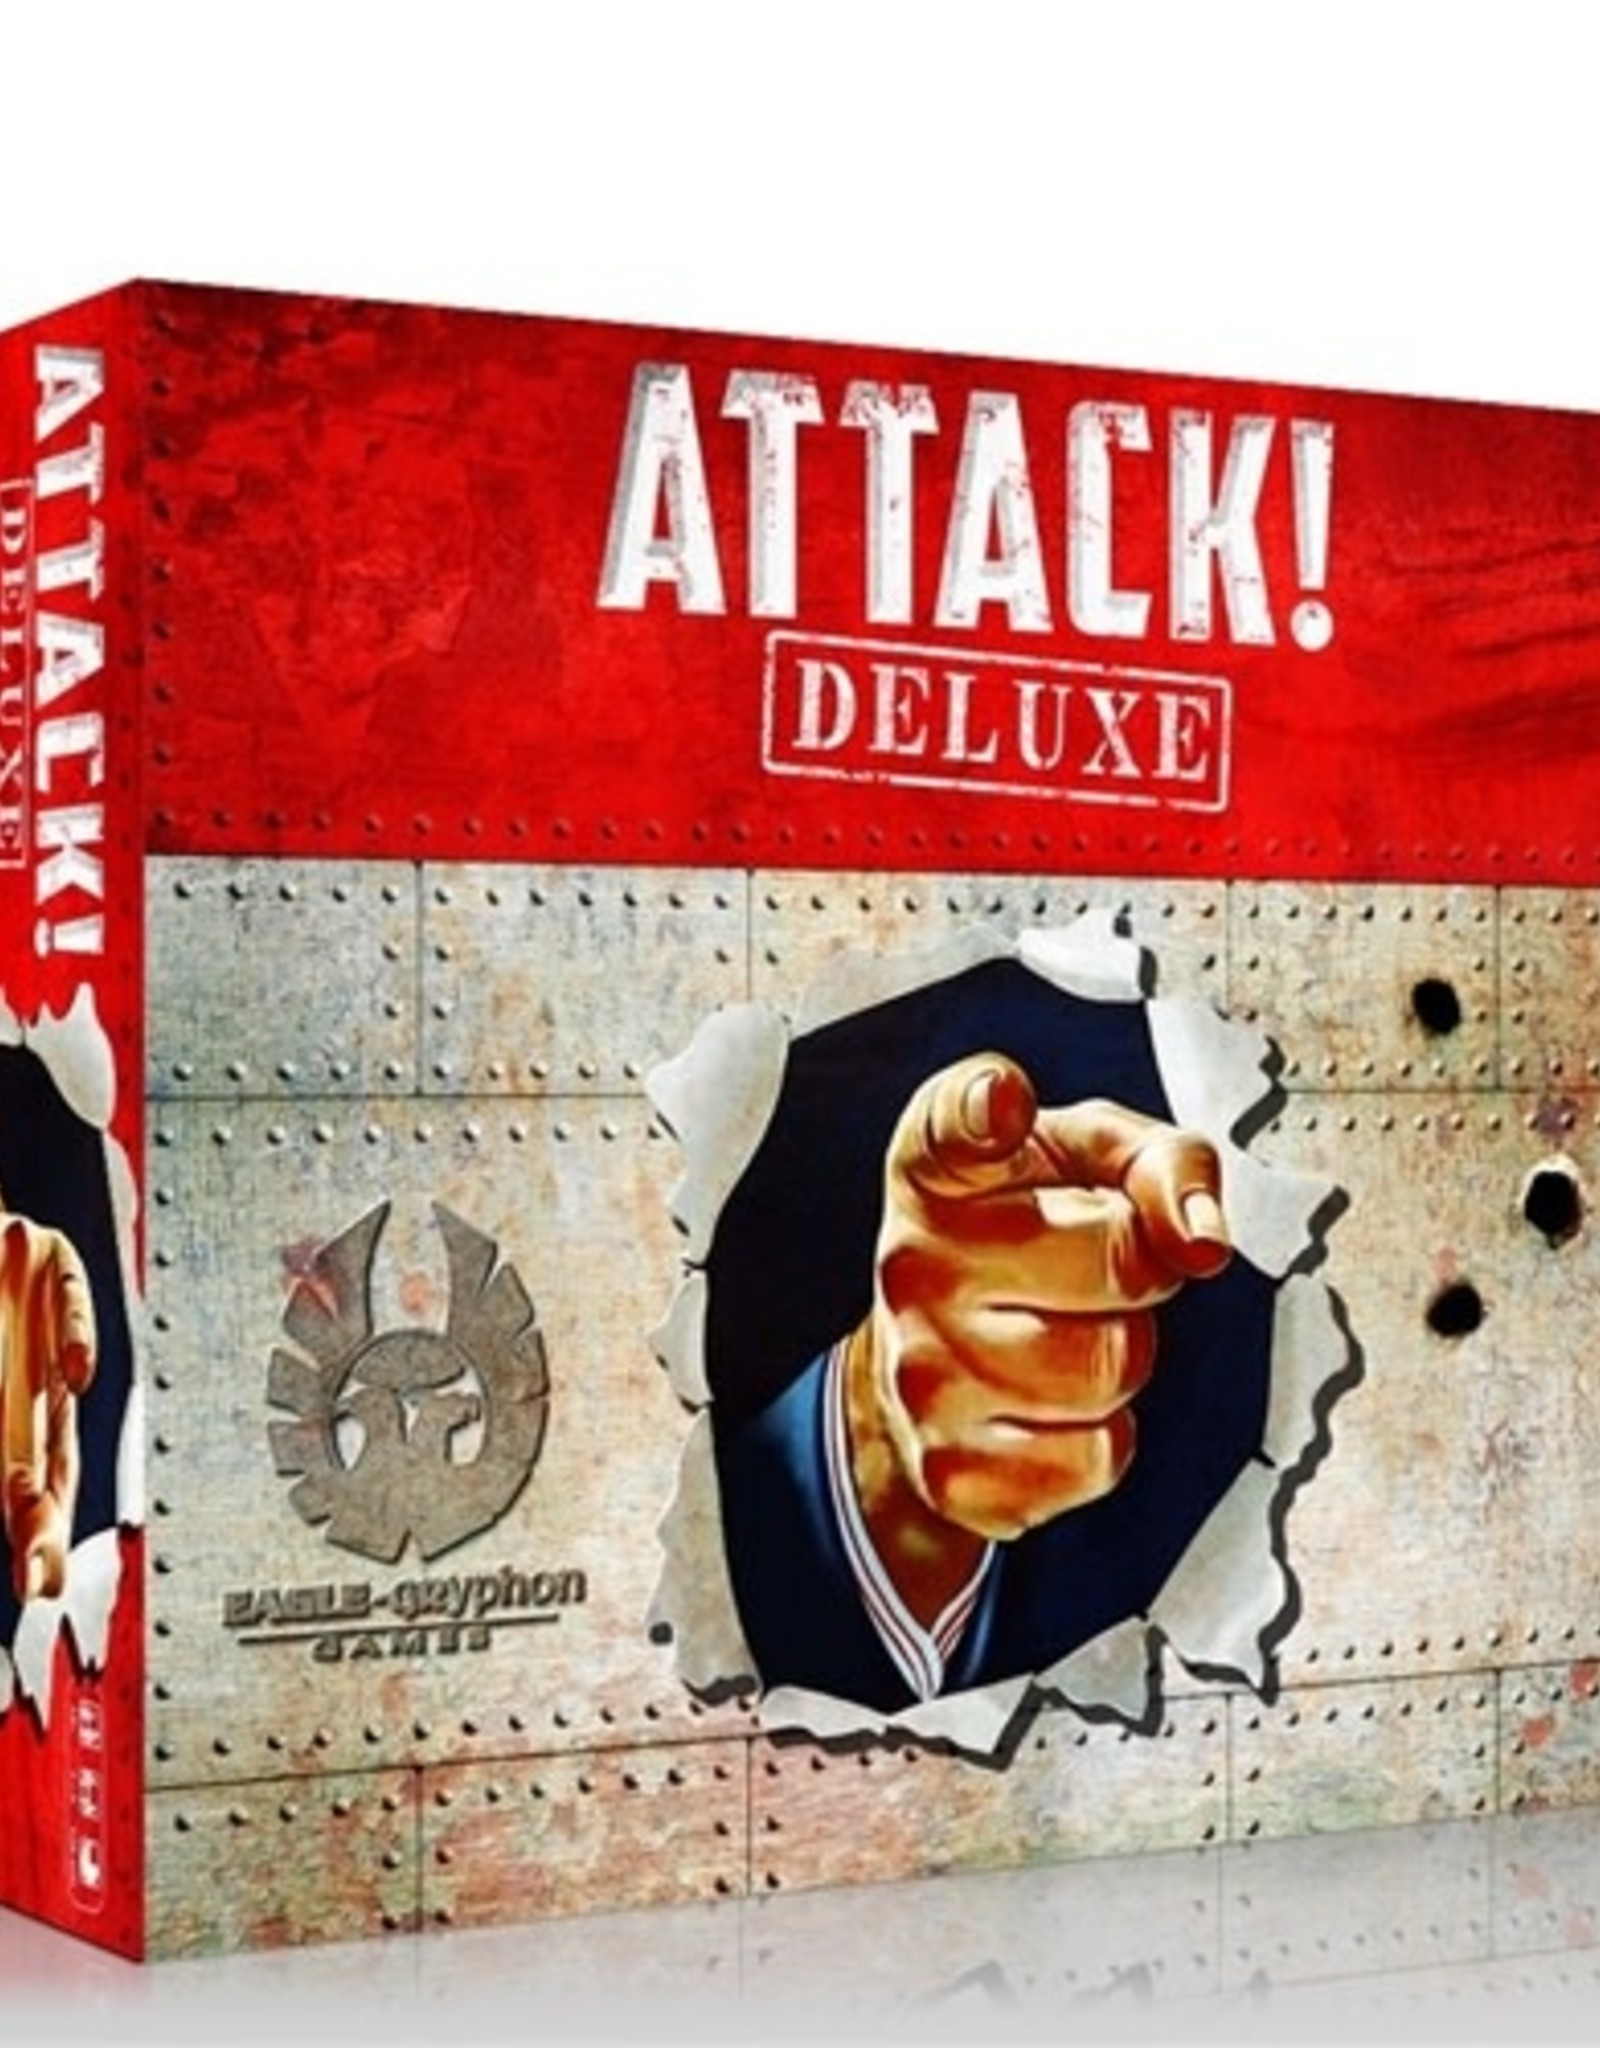 Eagle Gryphon Games Attack! Deluxe